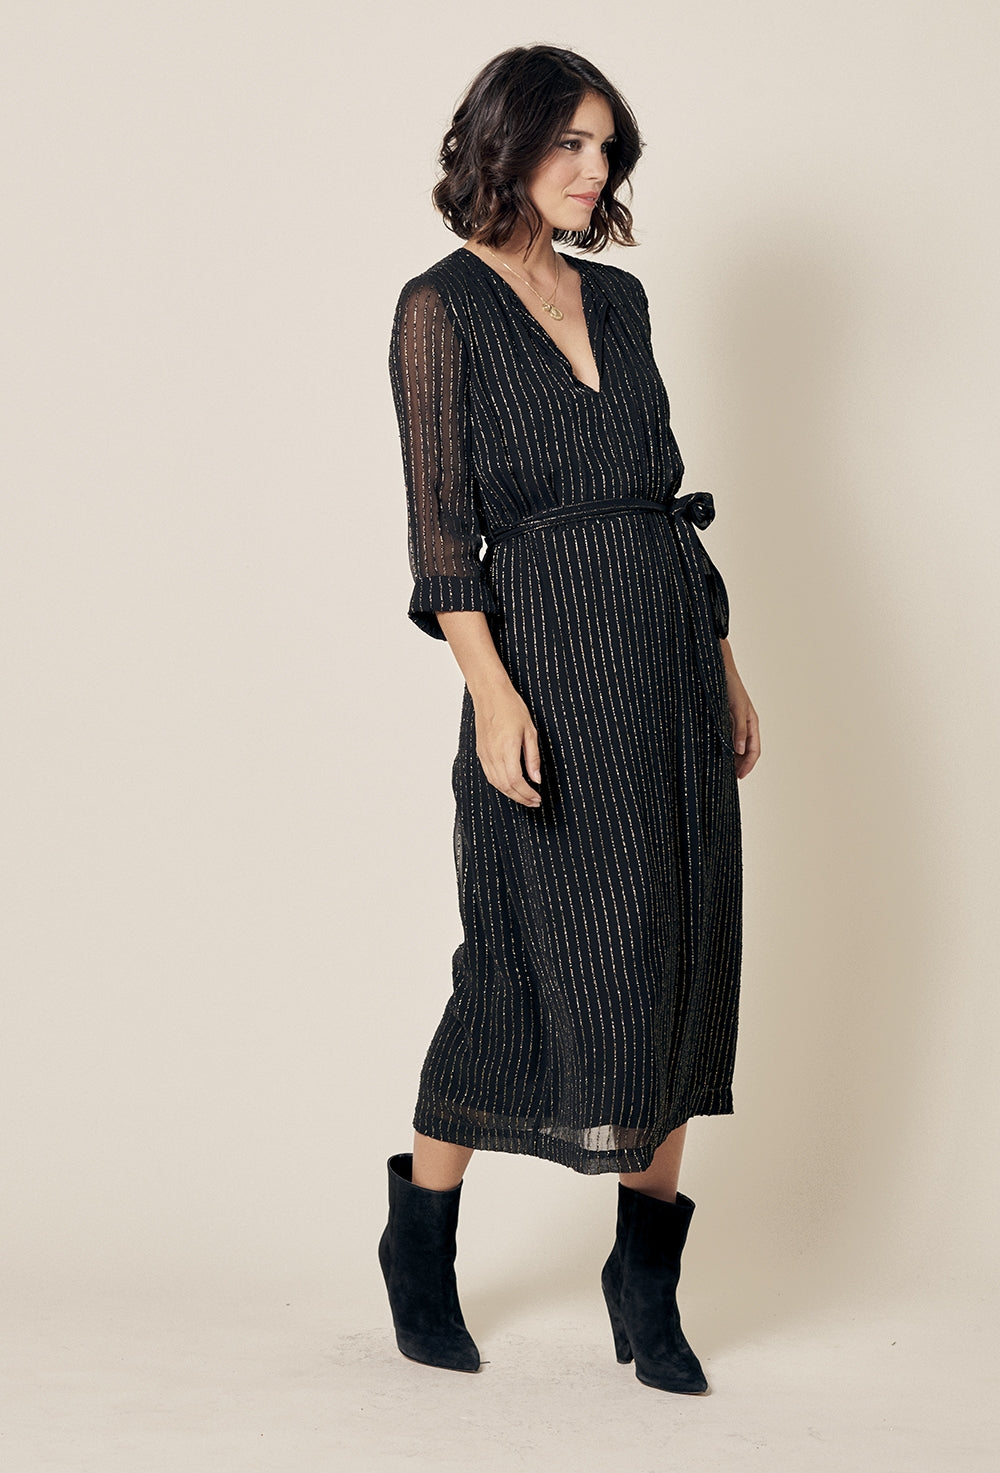 Noeli Black Lurex Stripe TIe Dress